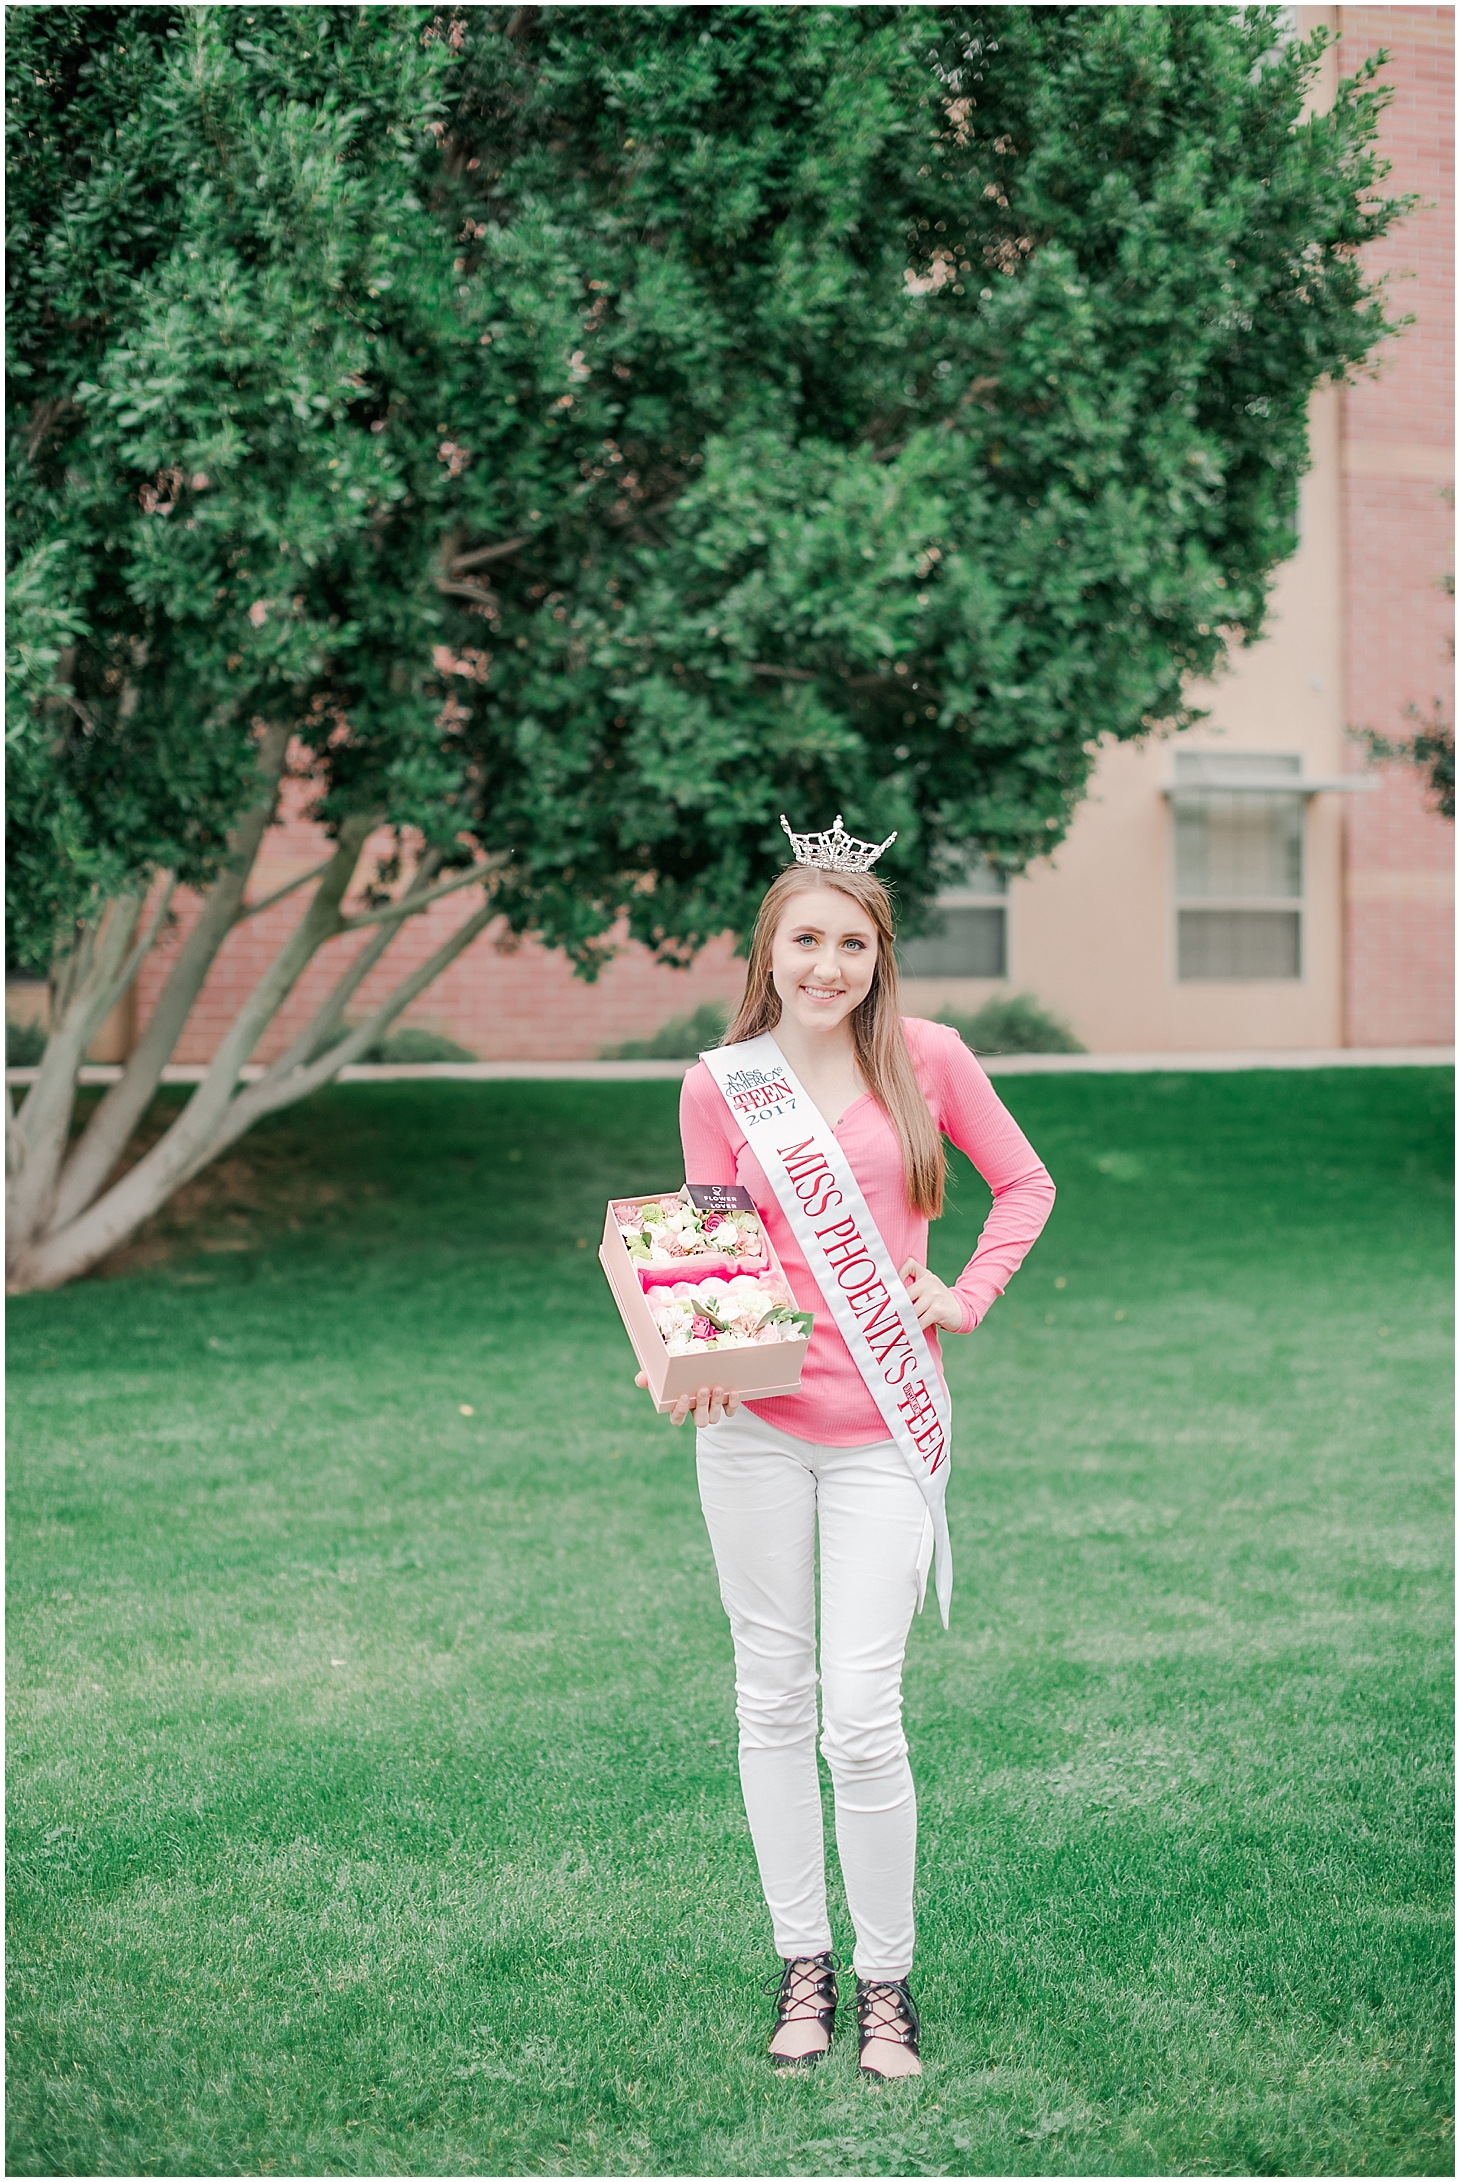 Beautiful box filled with an arrangement of lovely flowers and delicious French macarons made with love by Flower from Lower, and held by Miss Phoenix's Outstanding Teen Cassidy Miller. Photo taken by Jade Min Photography.